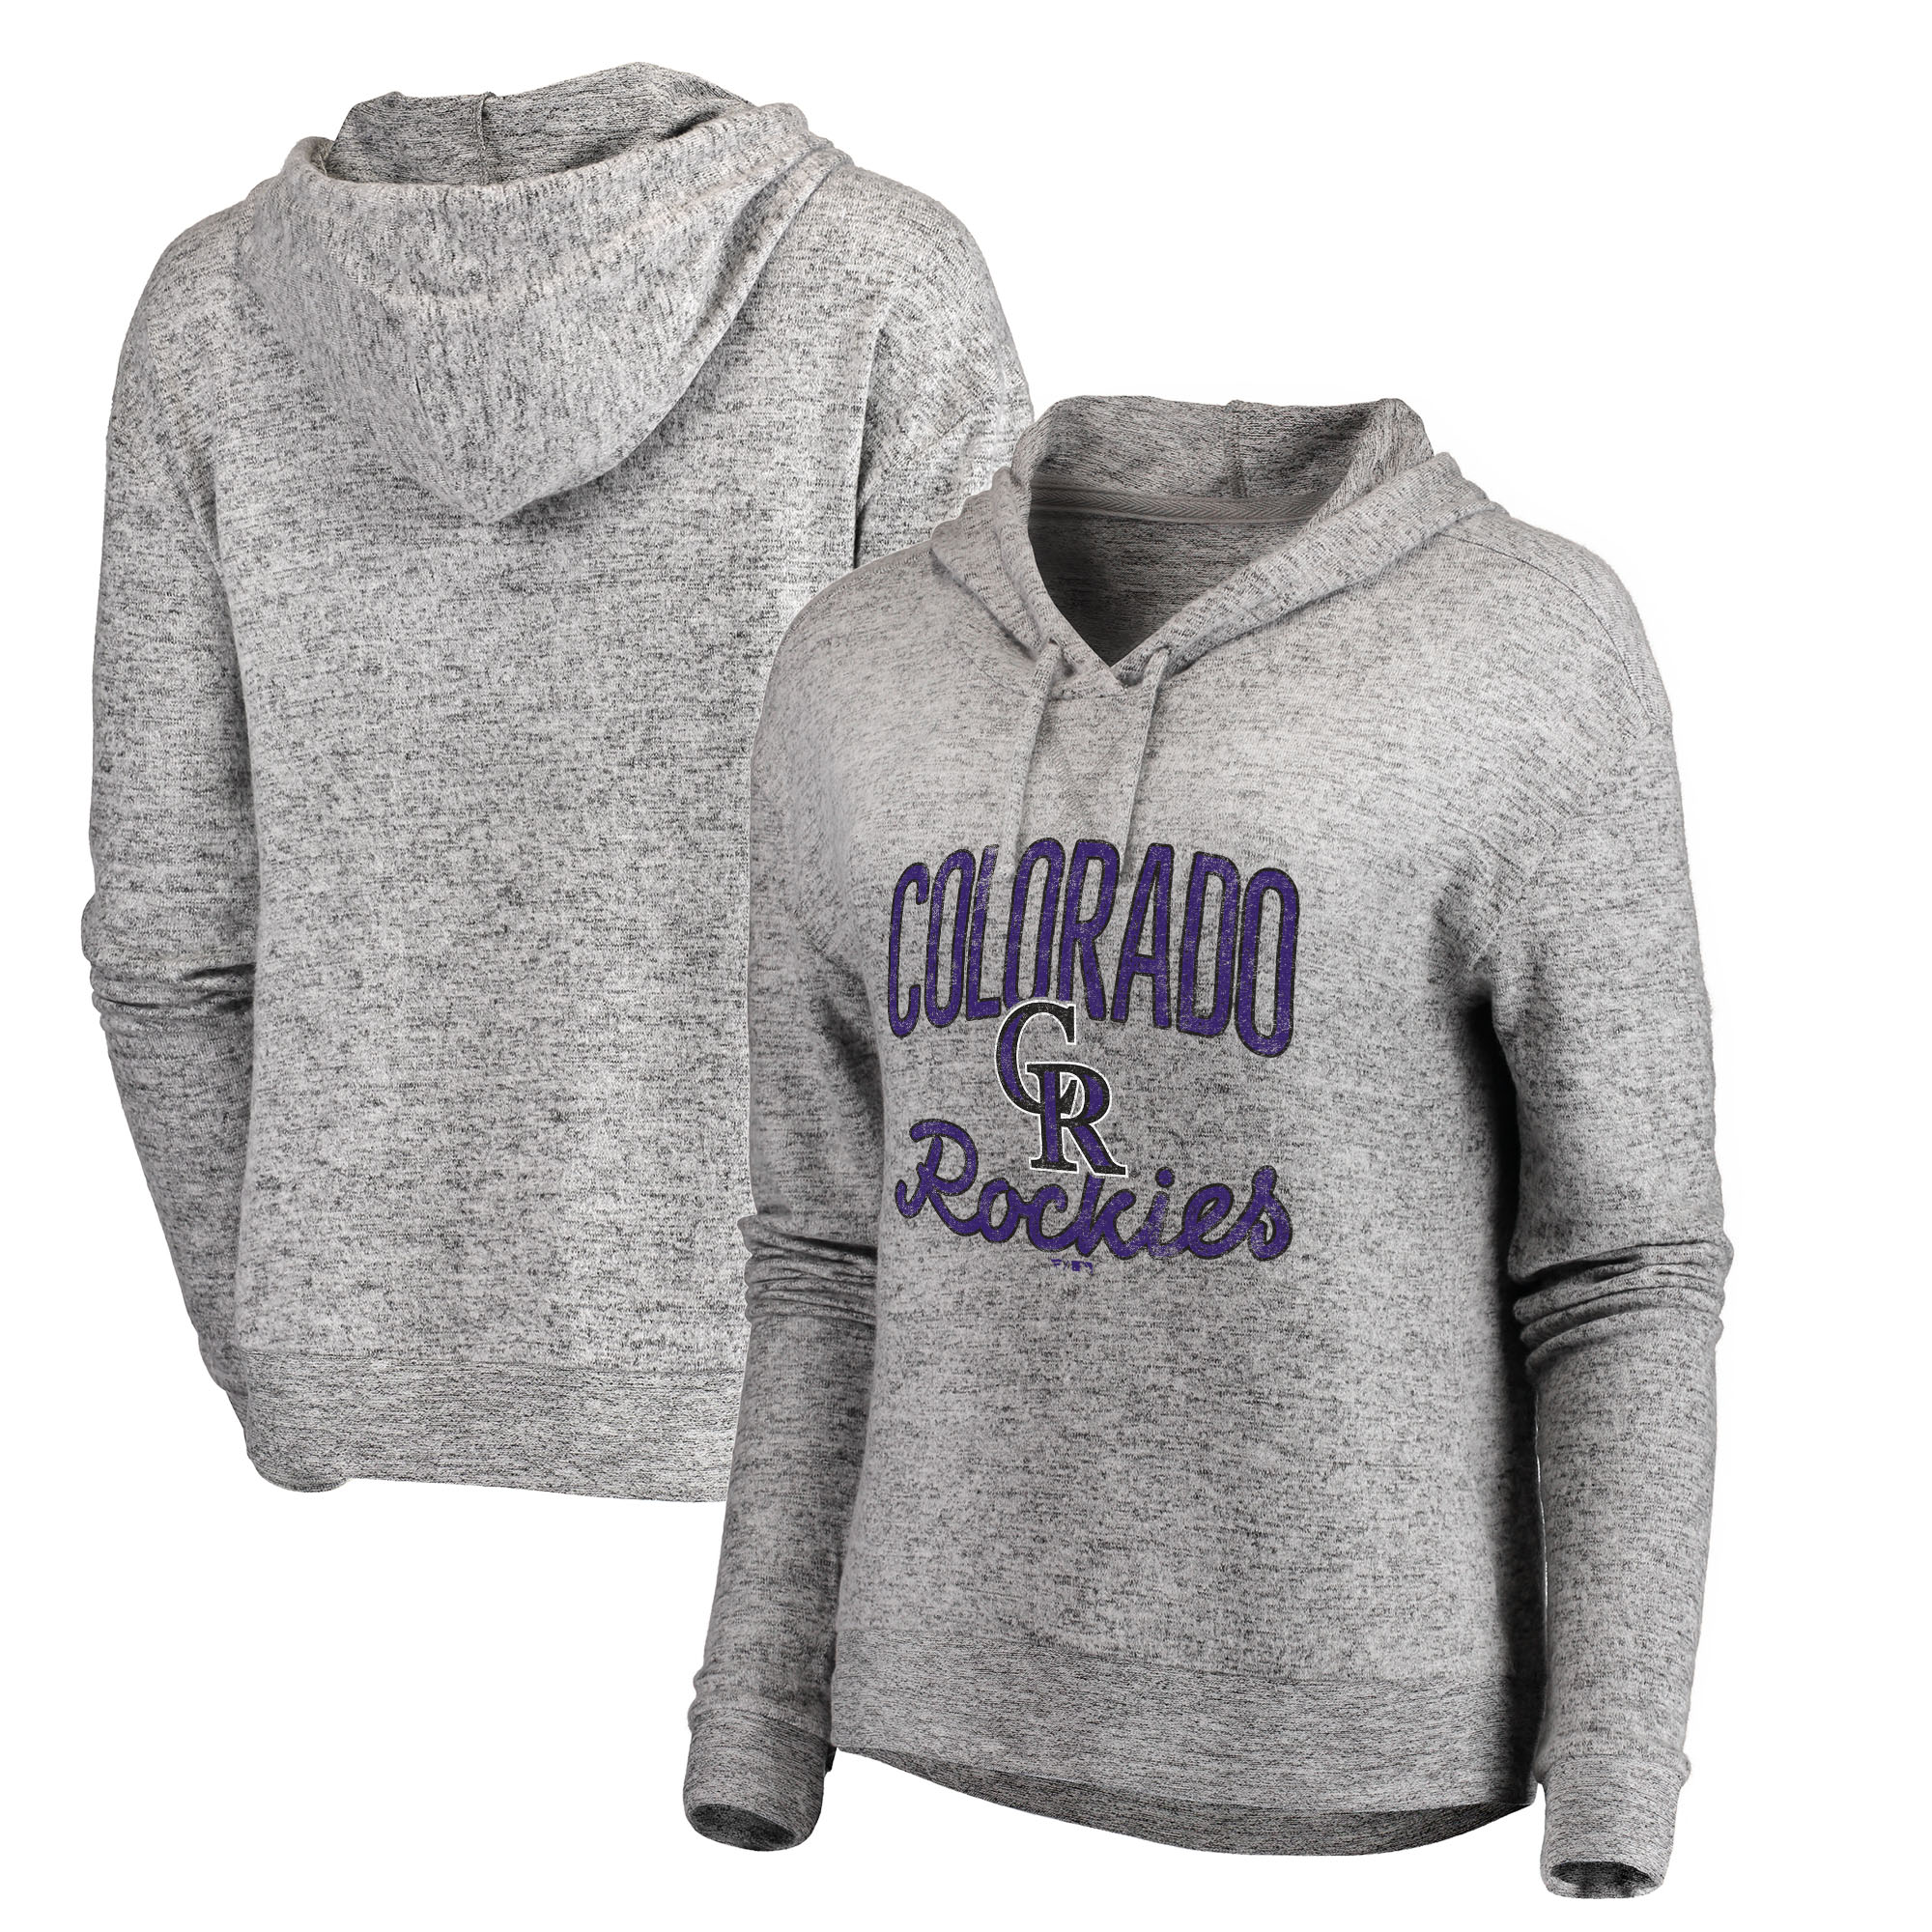 Colorado Rockies Let Loose by RNL Women's Cozy Collection Steadfast Pullover Hoodie - Heathered Gray